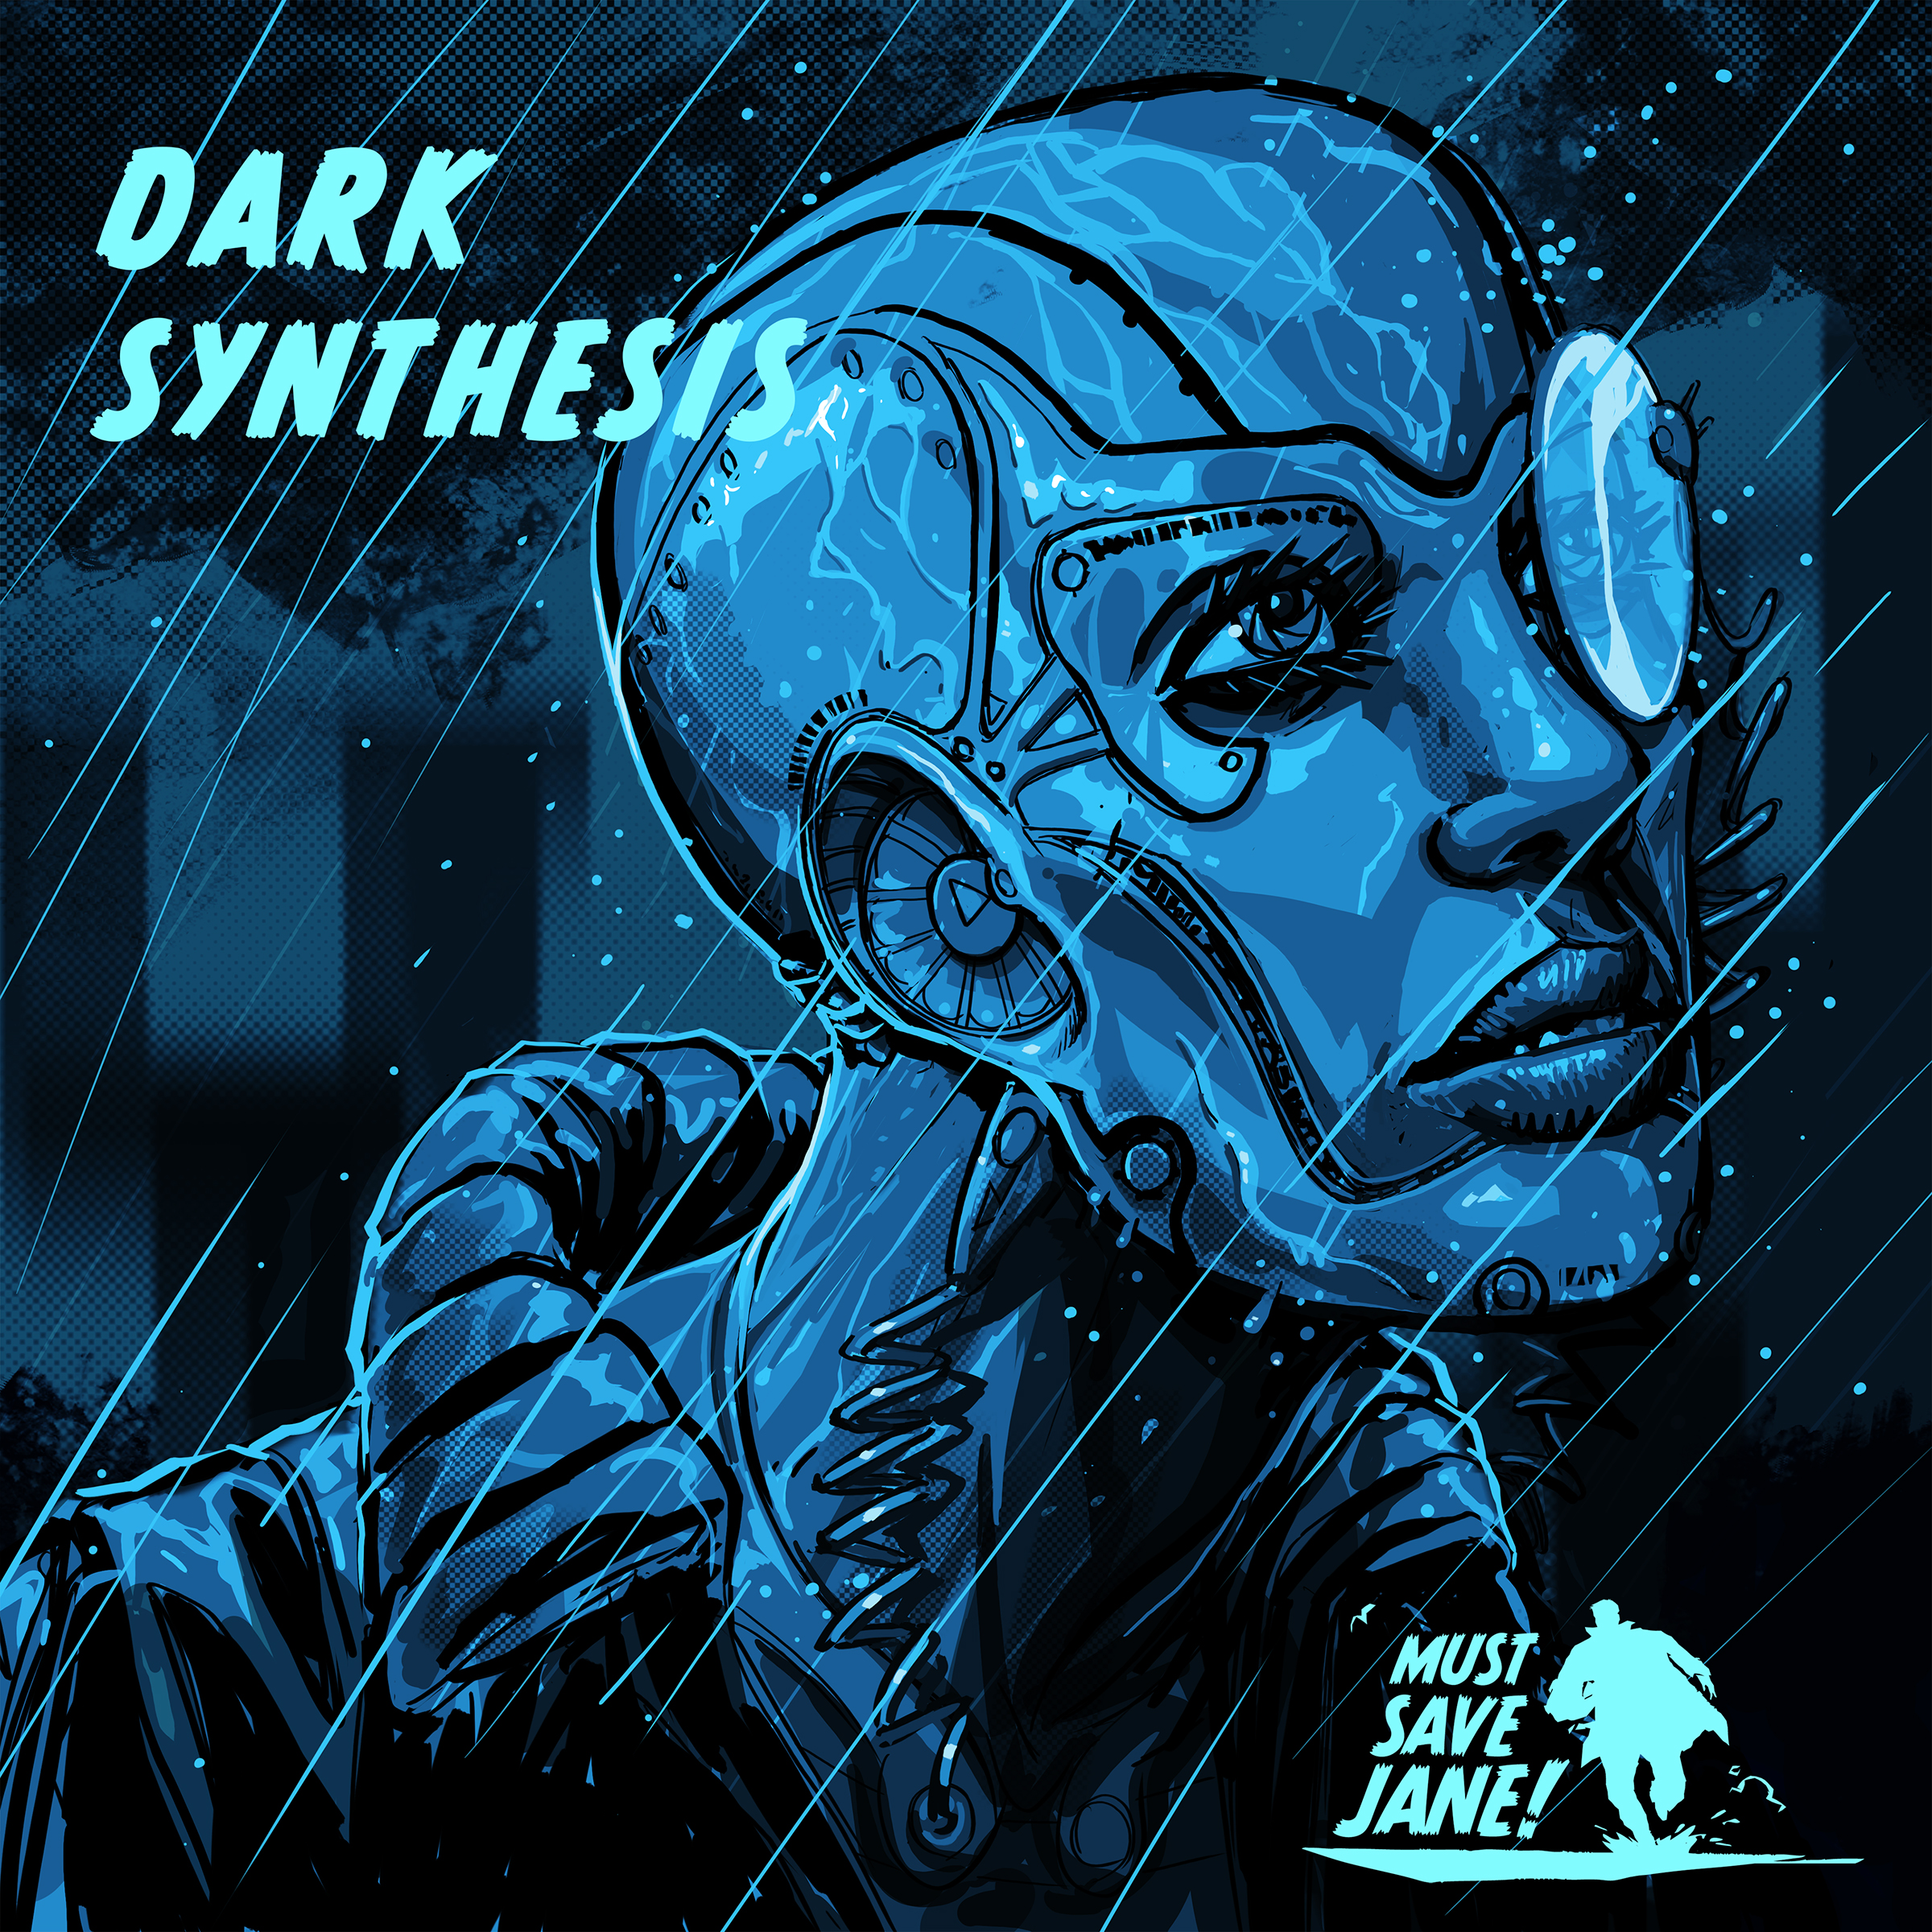 MSJ_DarkSynthesis_2400x2400